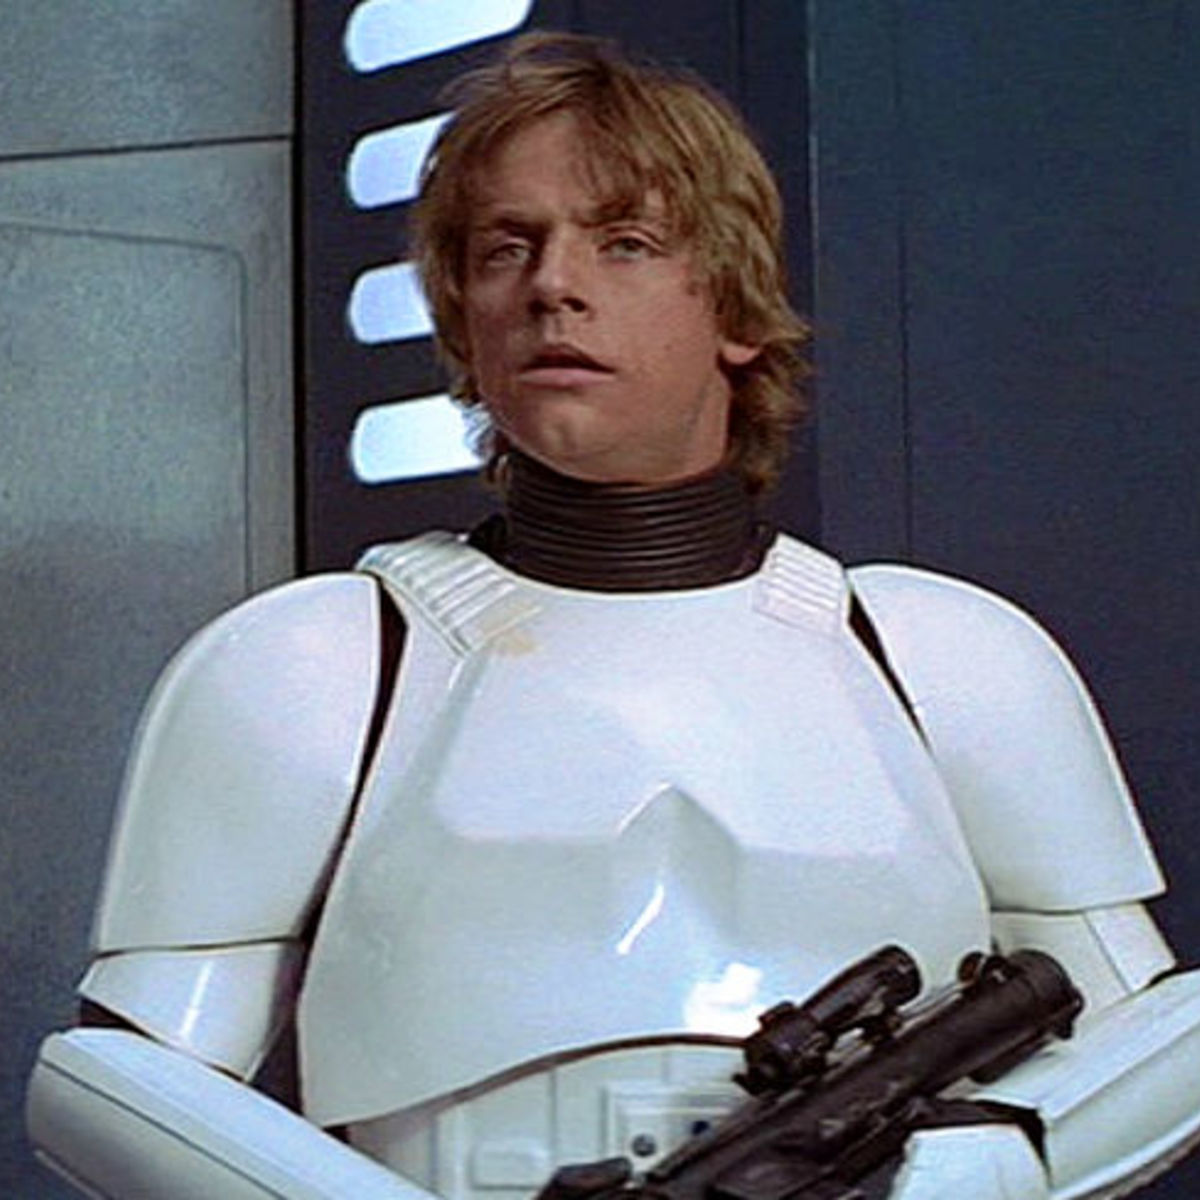 star-wars-luke-skywalker-stormtrooper-mark-hamill